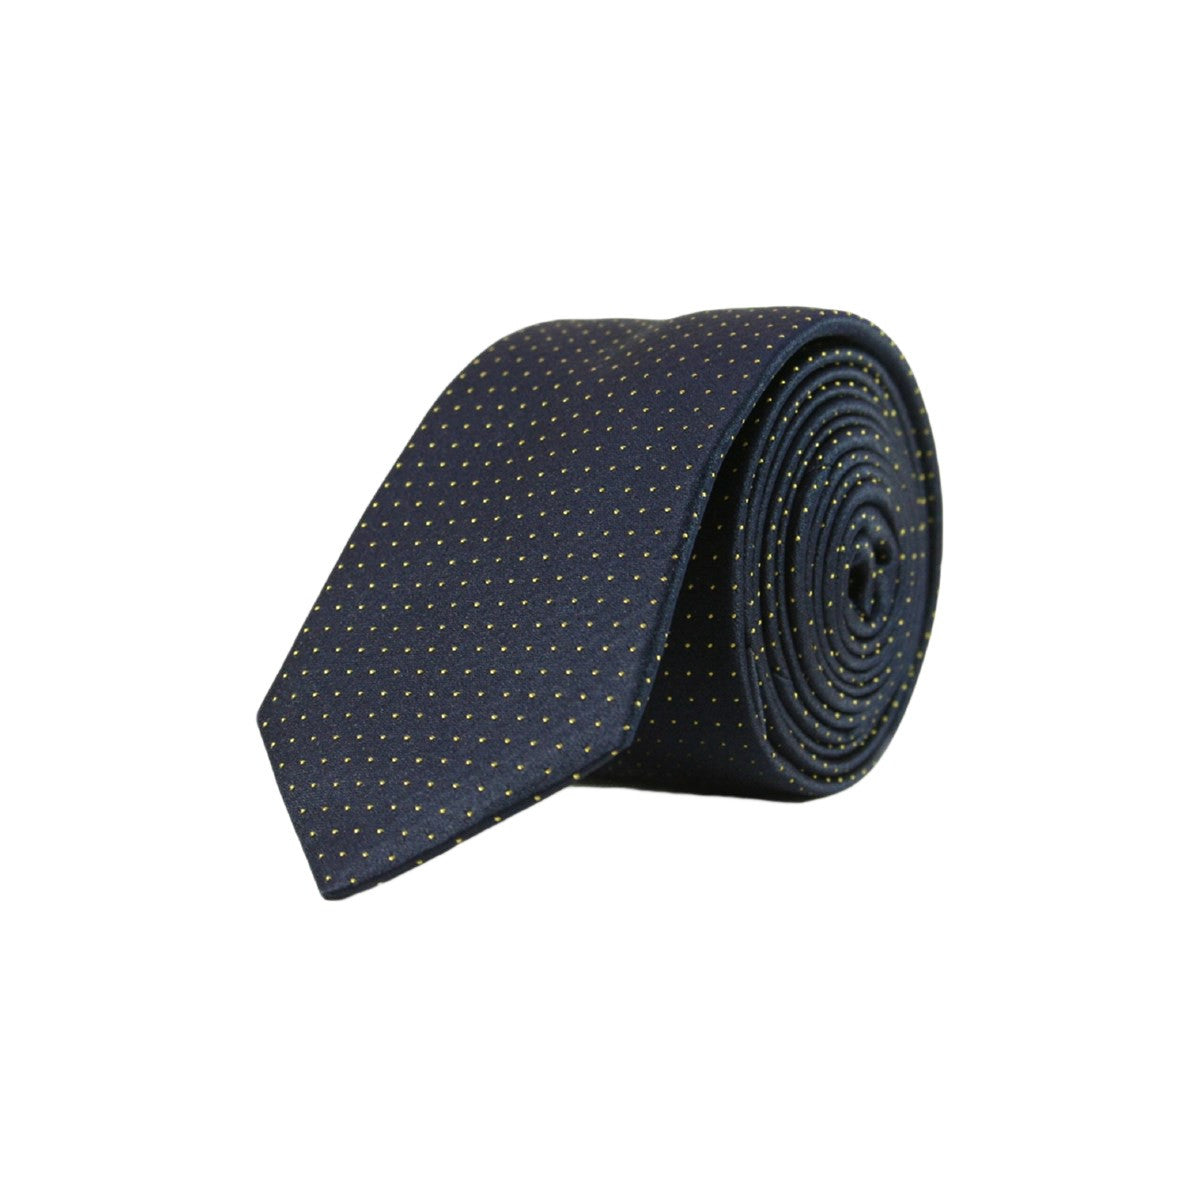 REGULAR NAVY TIE